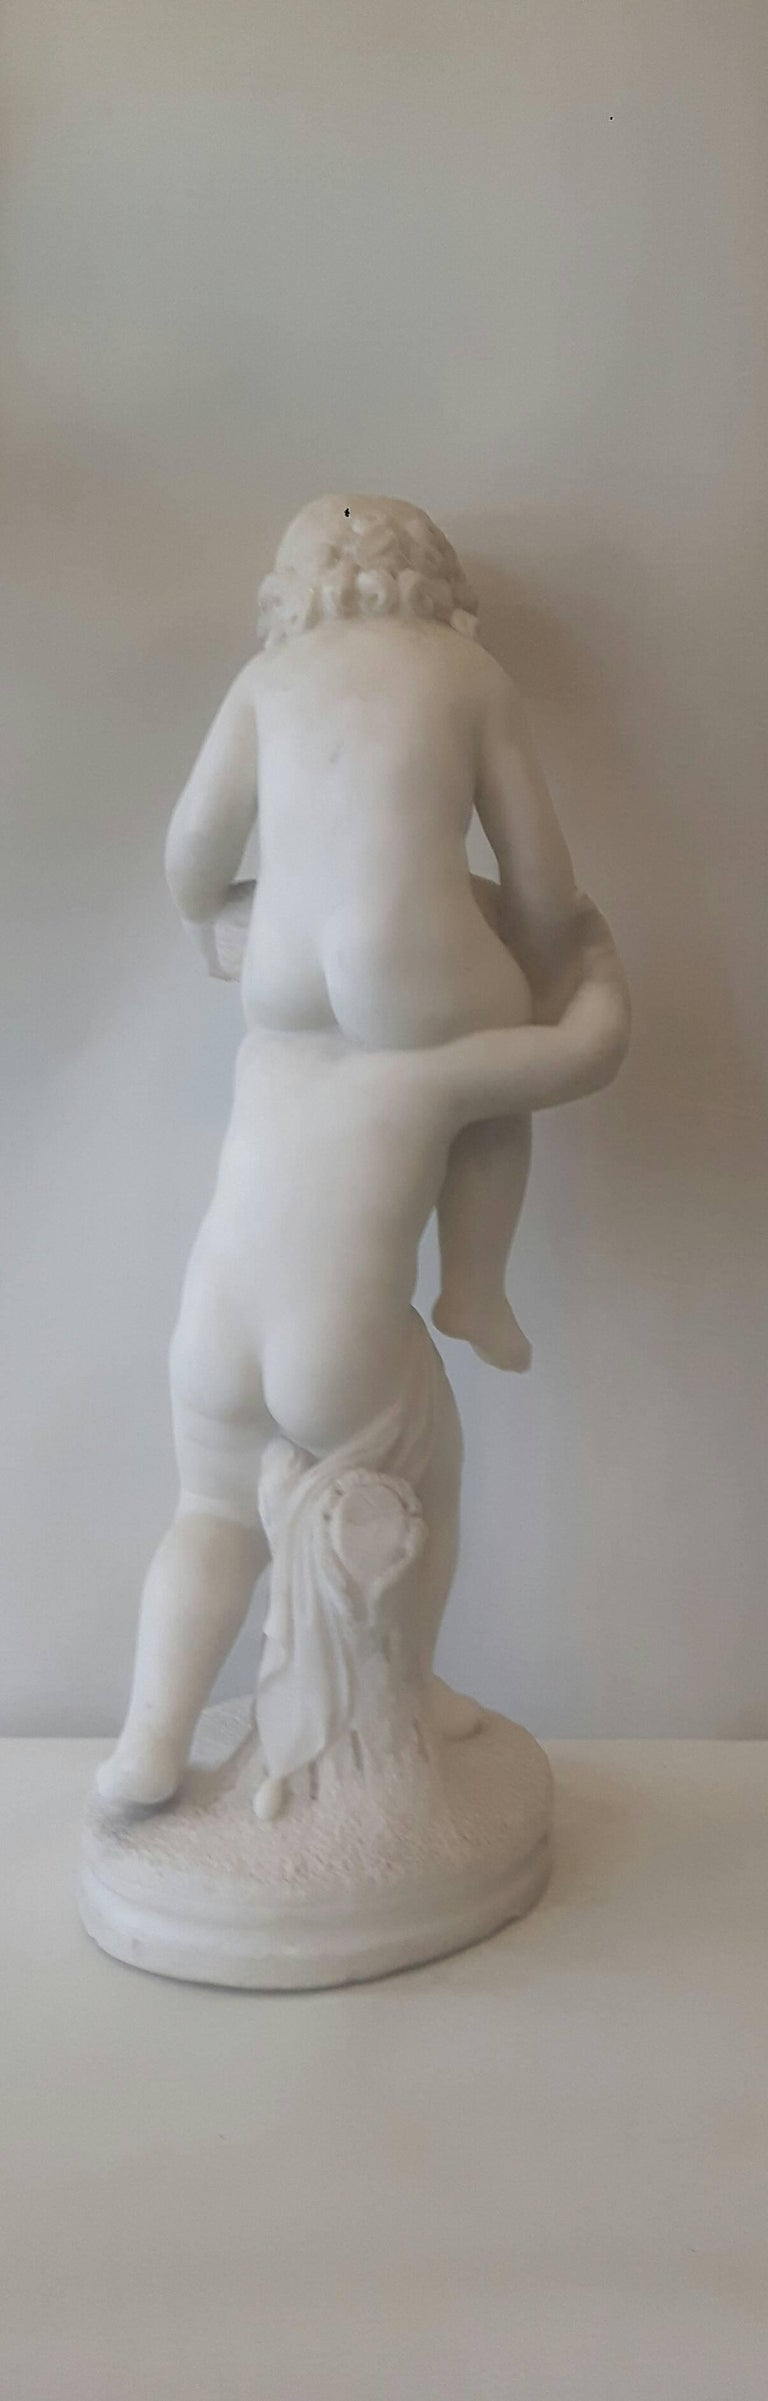 19th Century Italian Marble Group For Sale 2